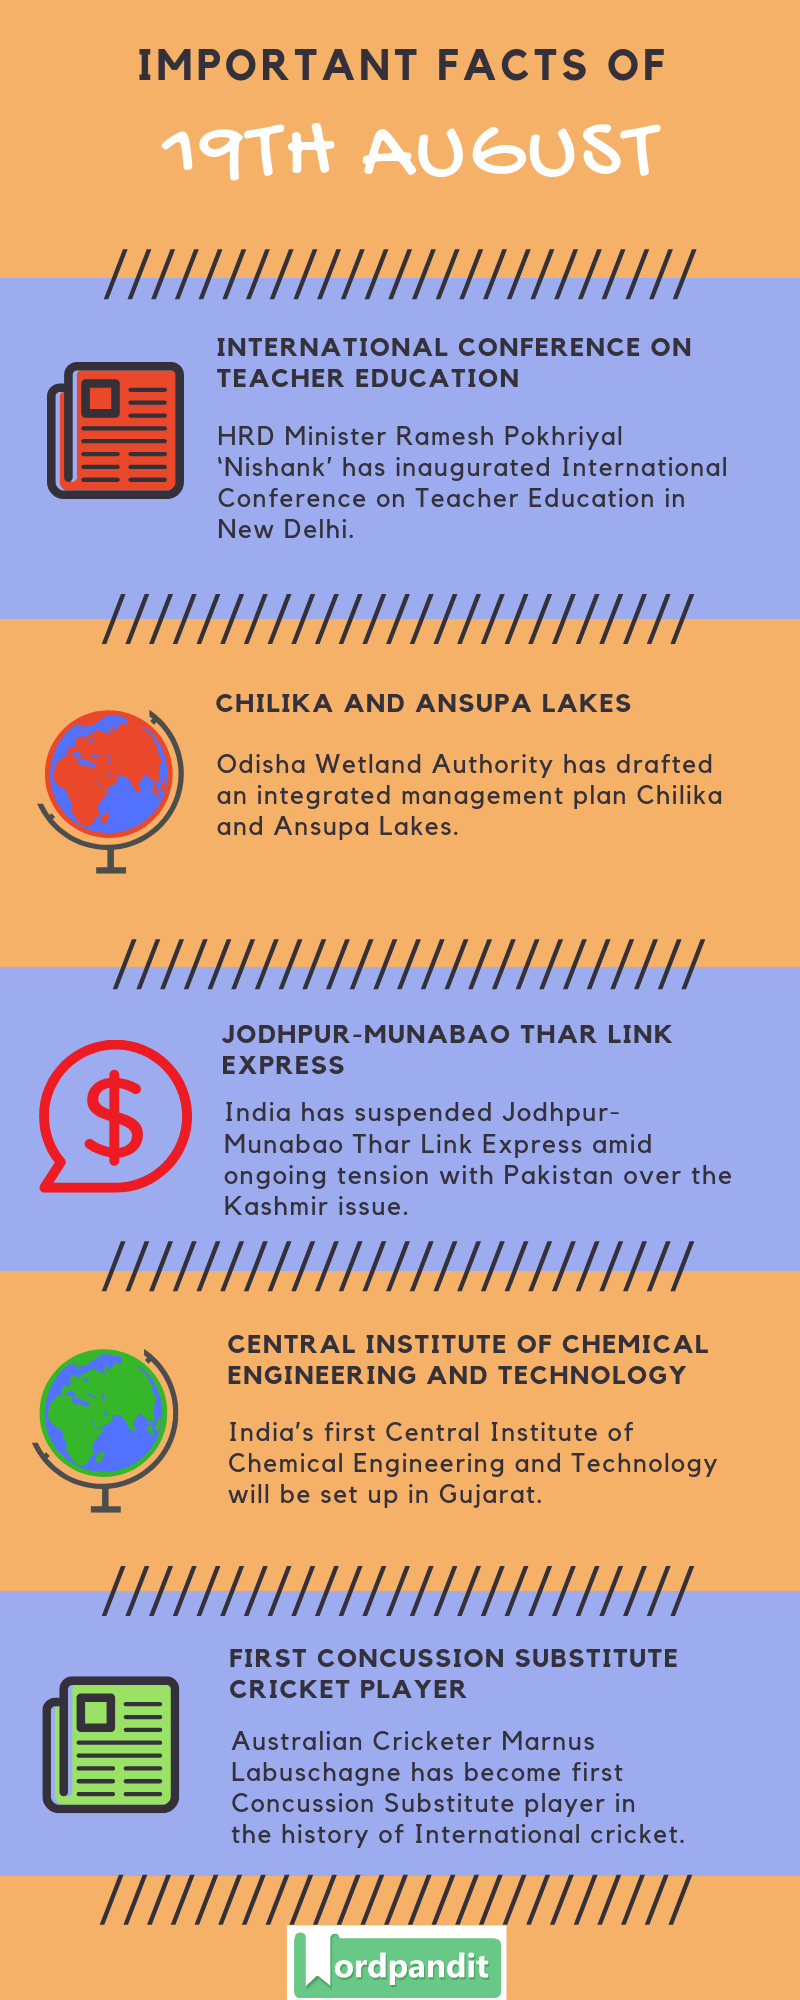 Daily Current Affairs 19 August 2019 Current Affairs Quiz 19 August 2019 Current Affairs Infographic